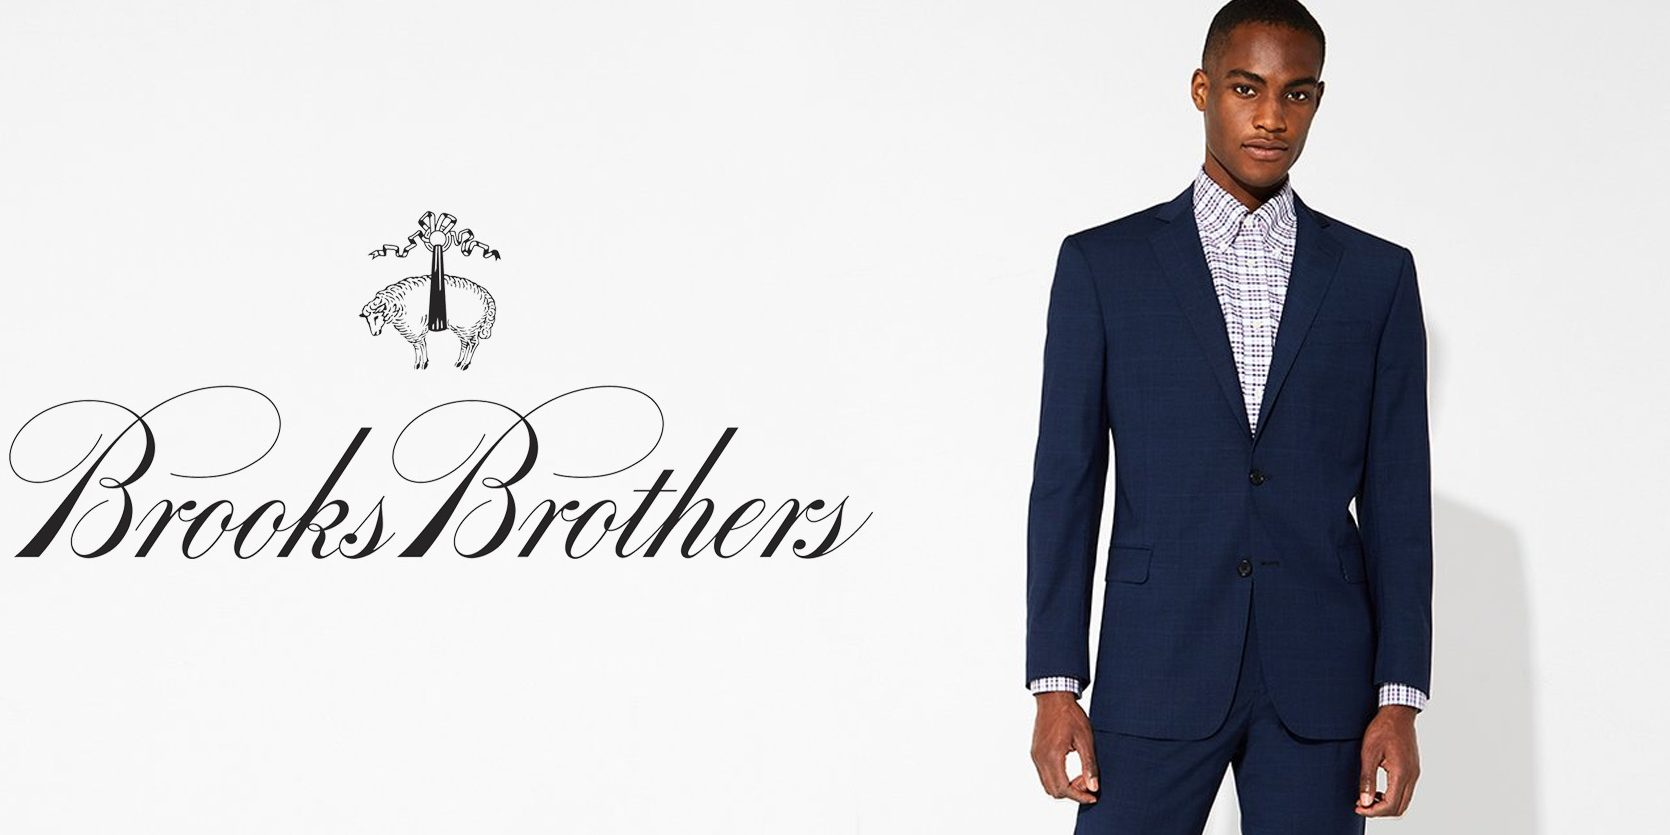 Polish your wardrobe with Brooks Brothers shirts, suits and